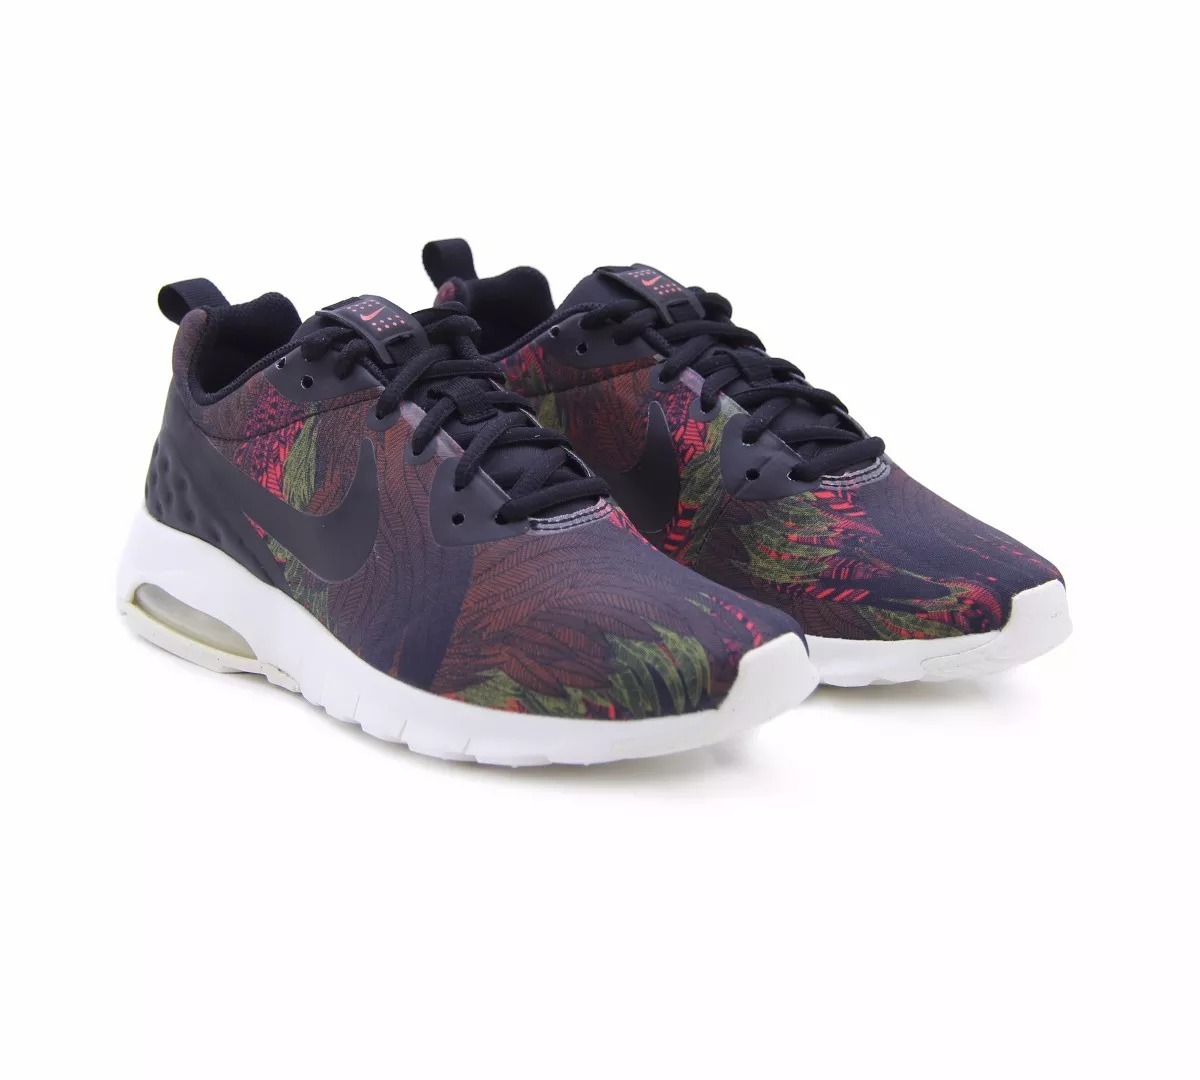 Zapatillas Nike Air Max Motion Lw Print $ 3.199,00